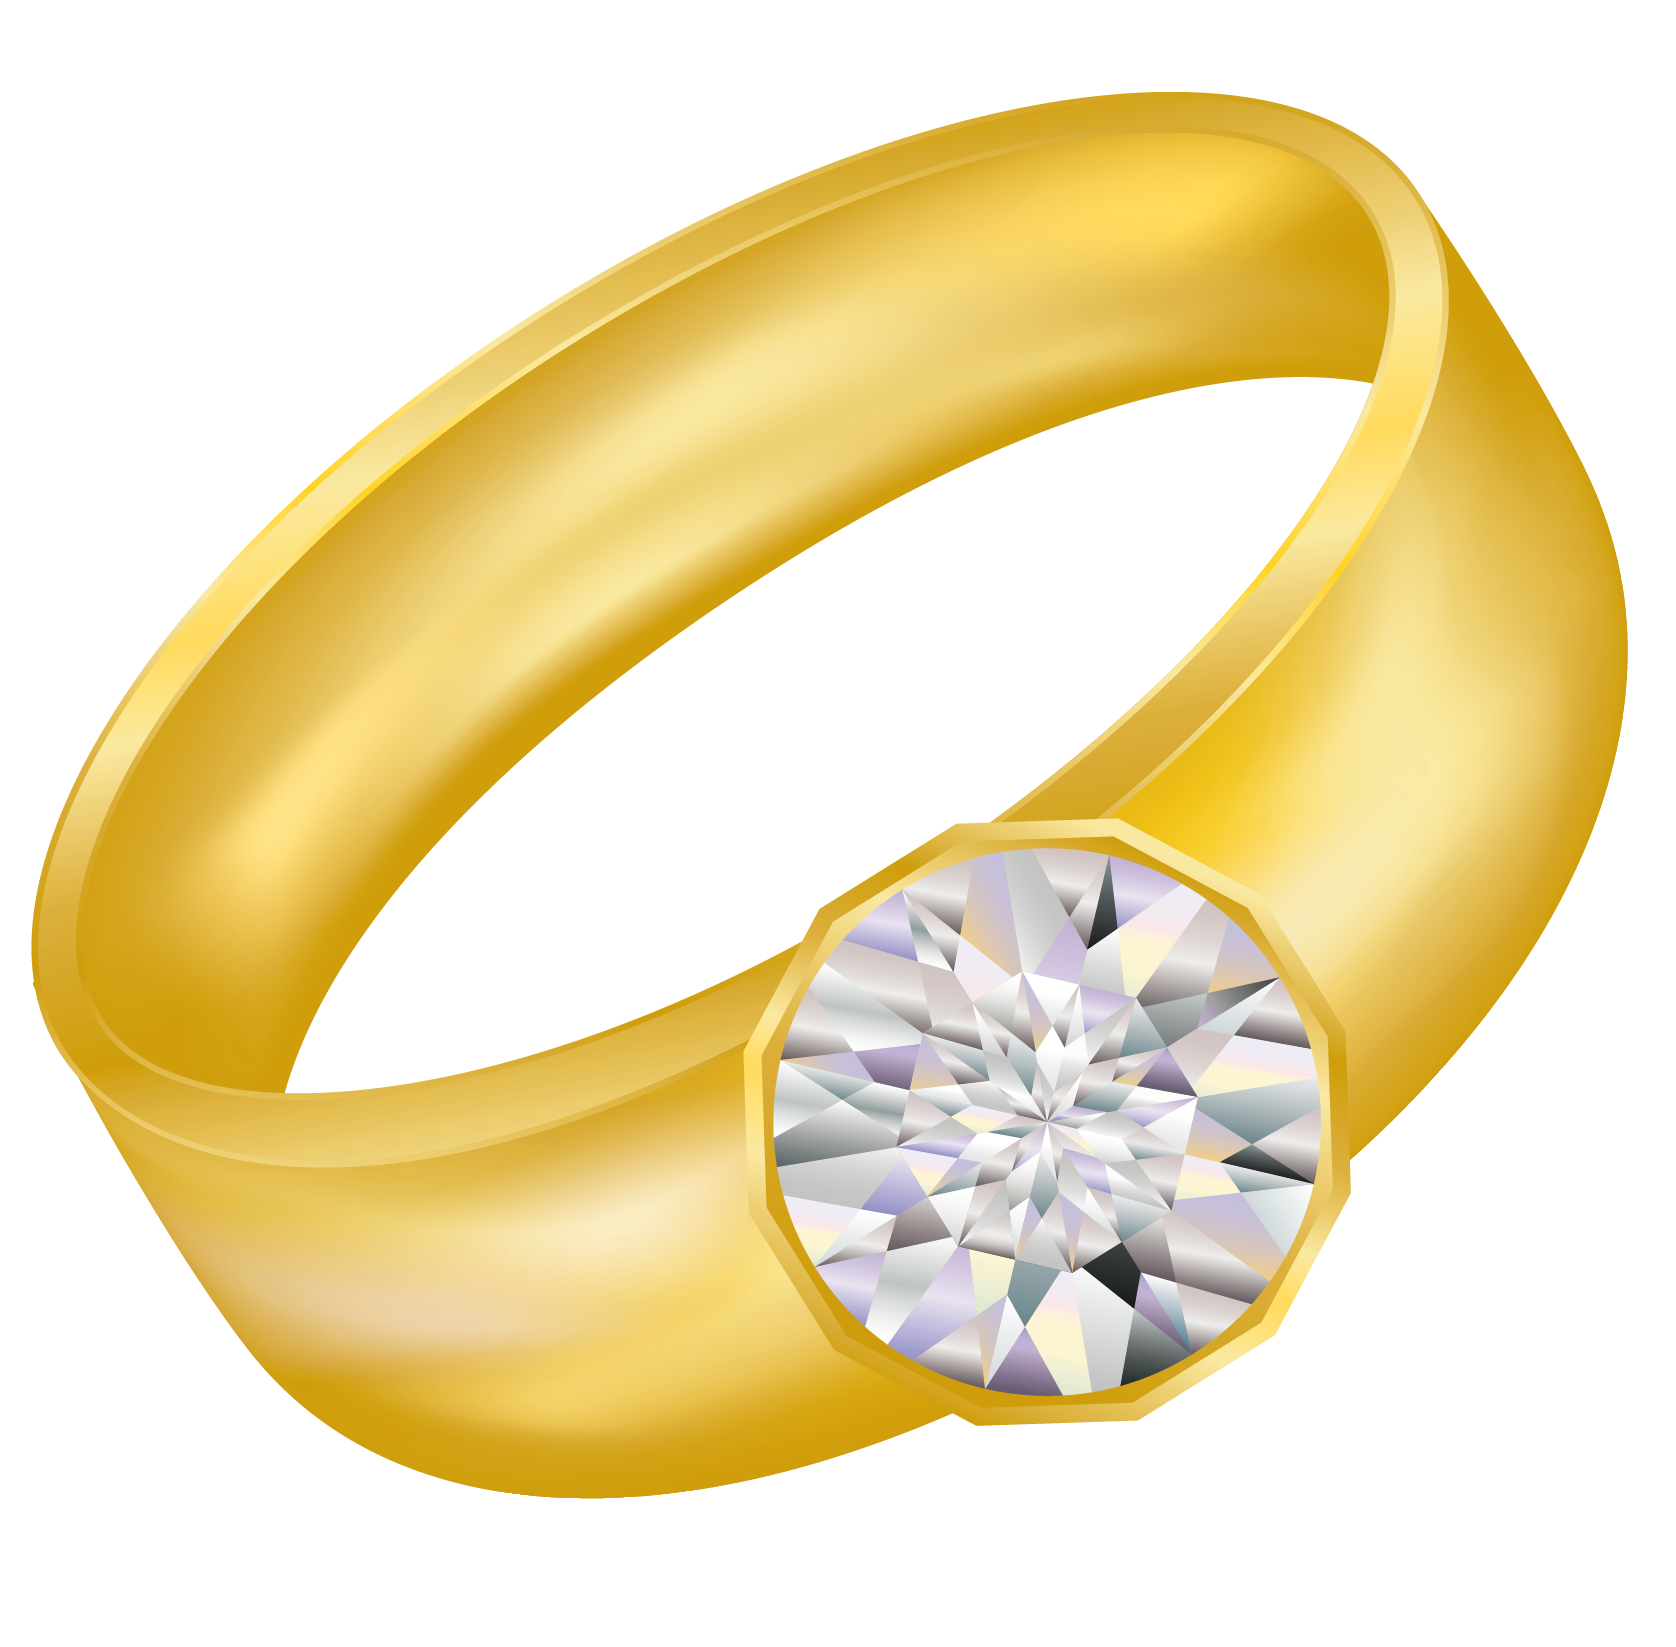 Gold clipart jewels.  collection of jewellery